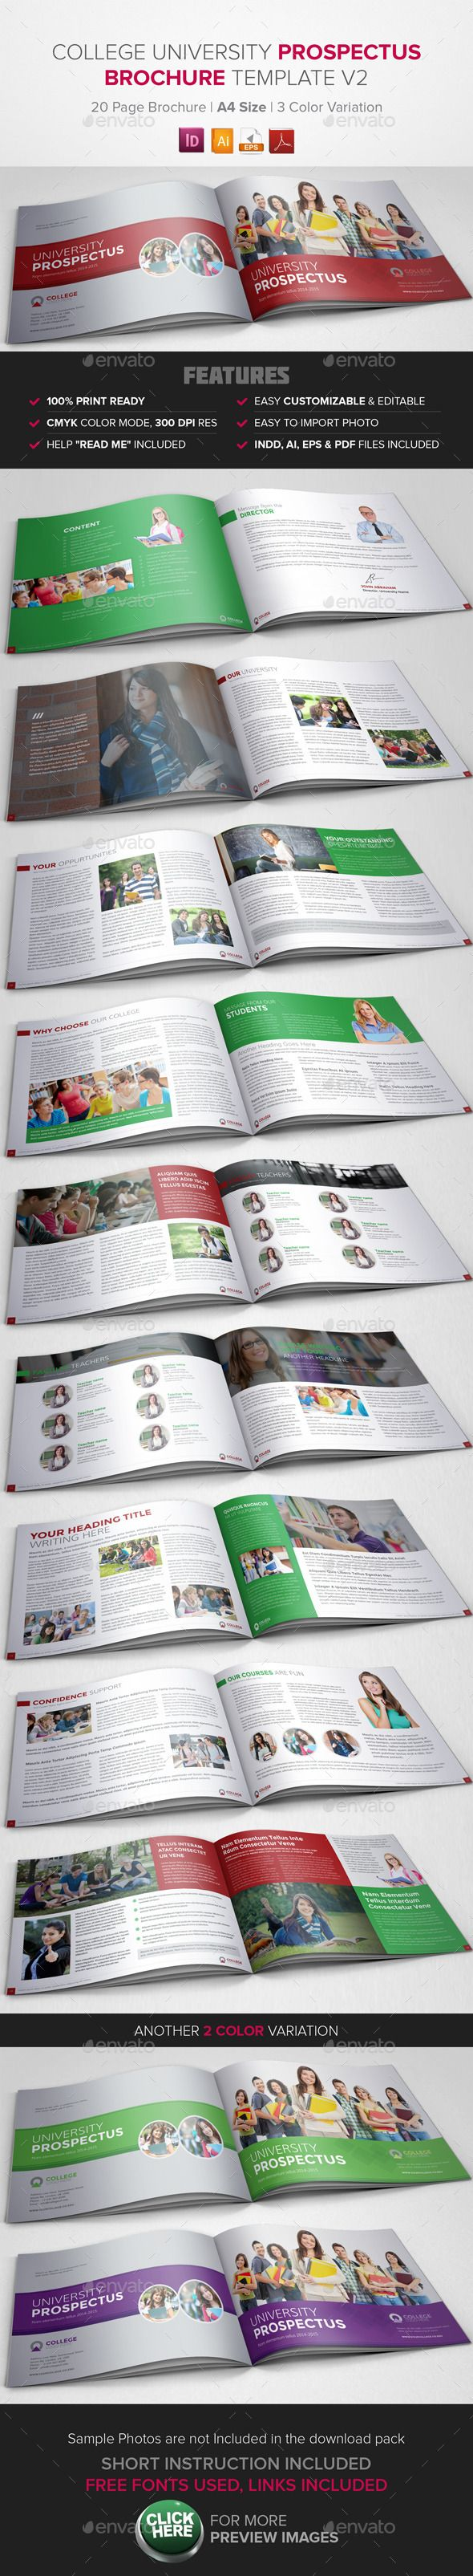 Best Brochure Images On   Editorial Design Brochure